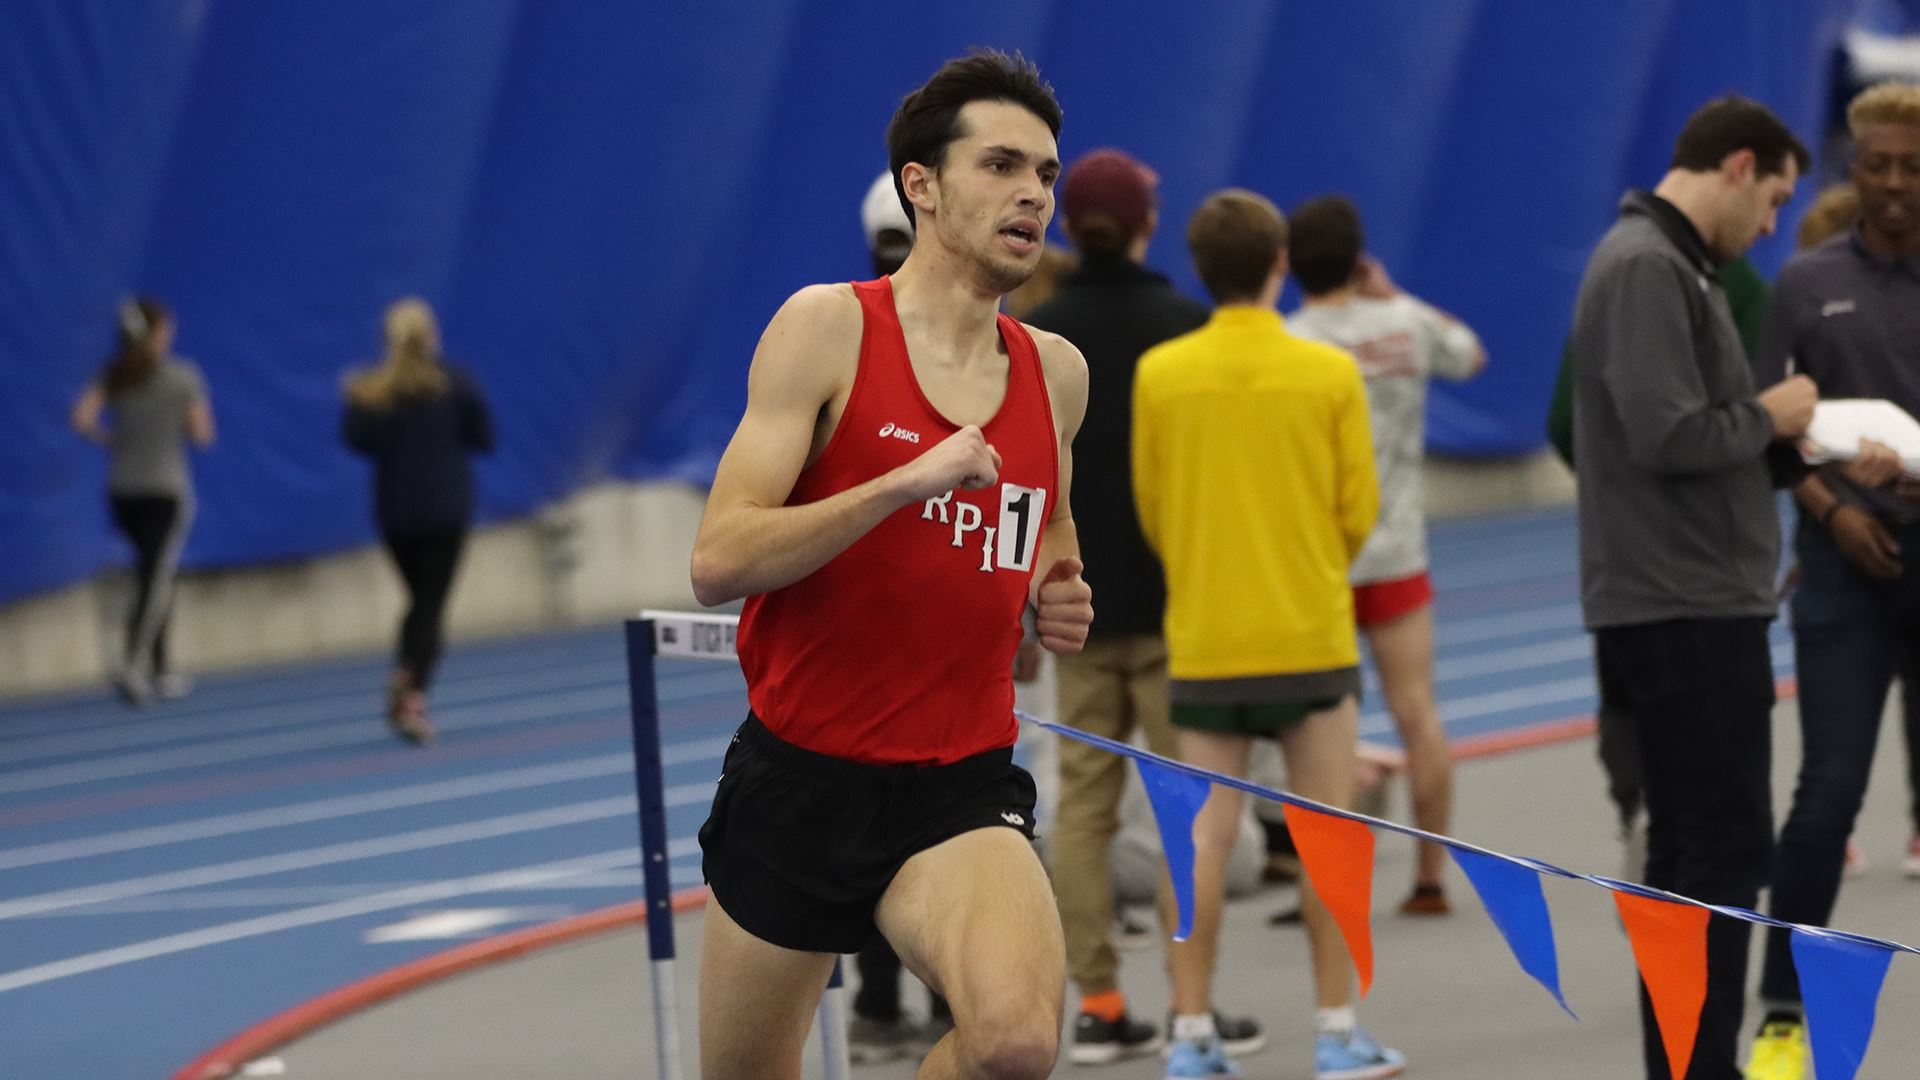 King of Prussia Runner Named Liberty League Men's Track Performer of the Year